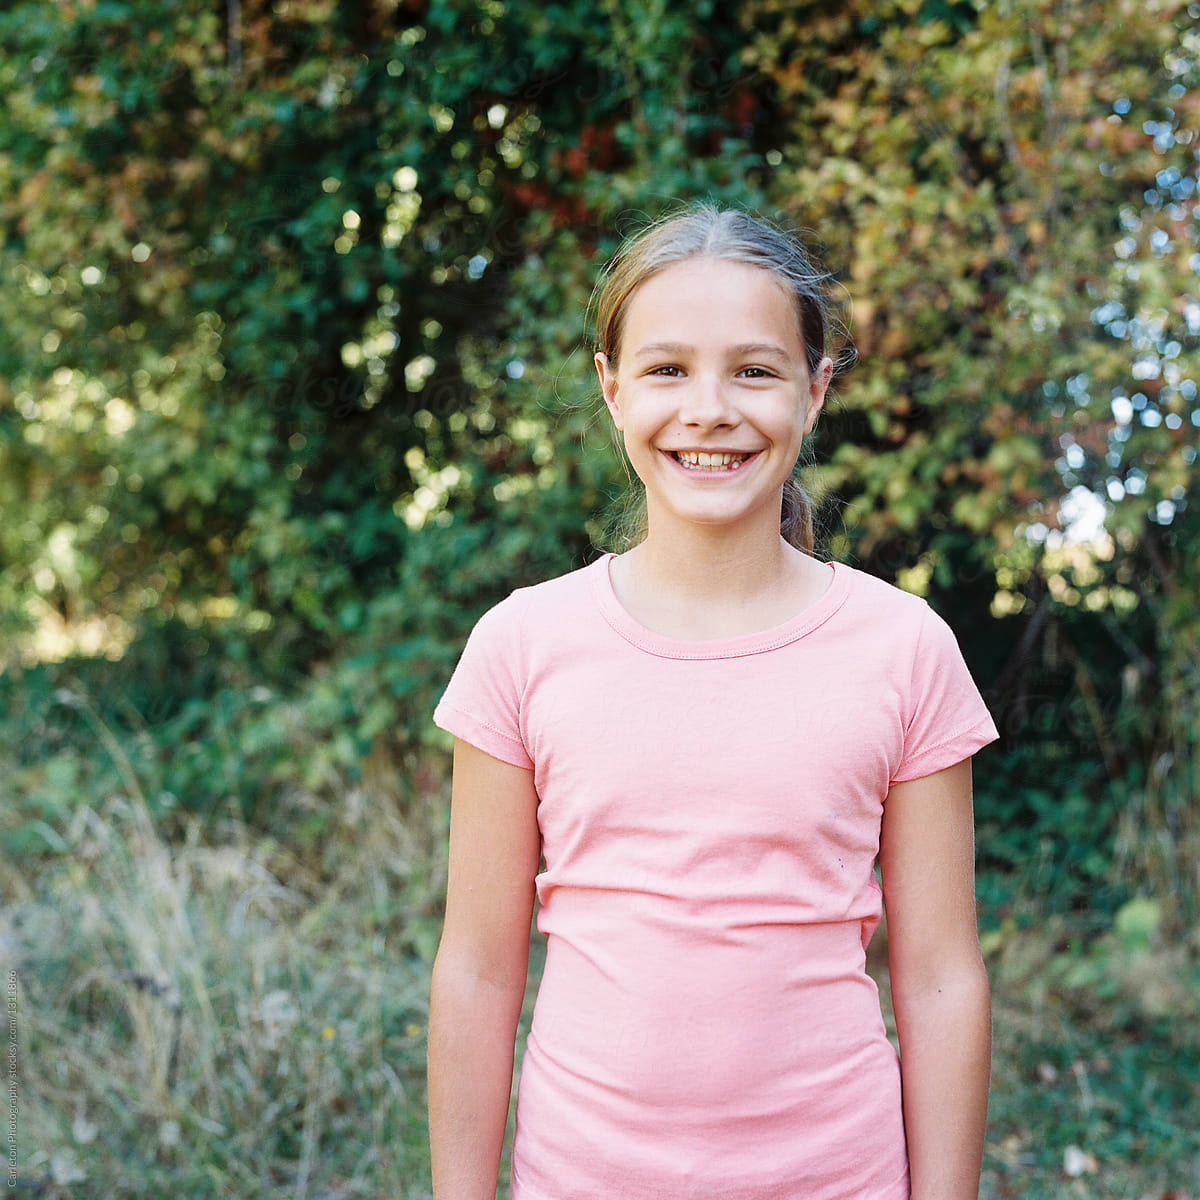 Preteen girl smiling outdoors by Carleton Photography